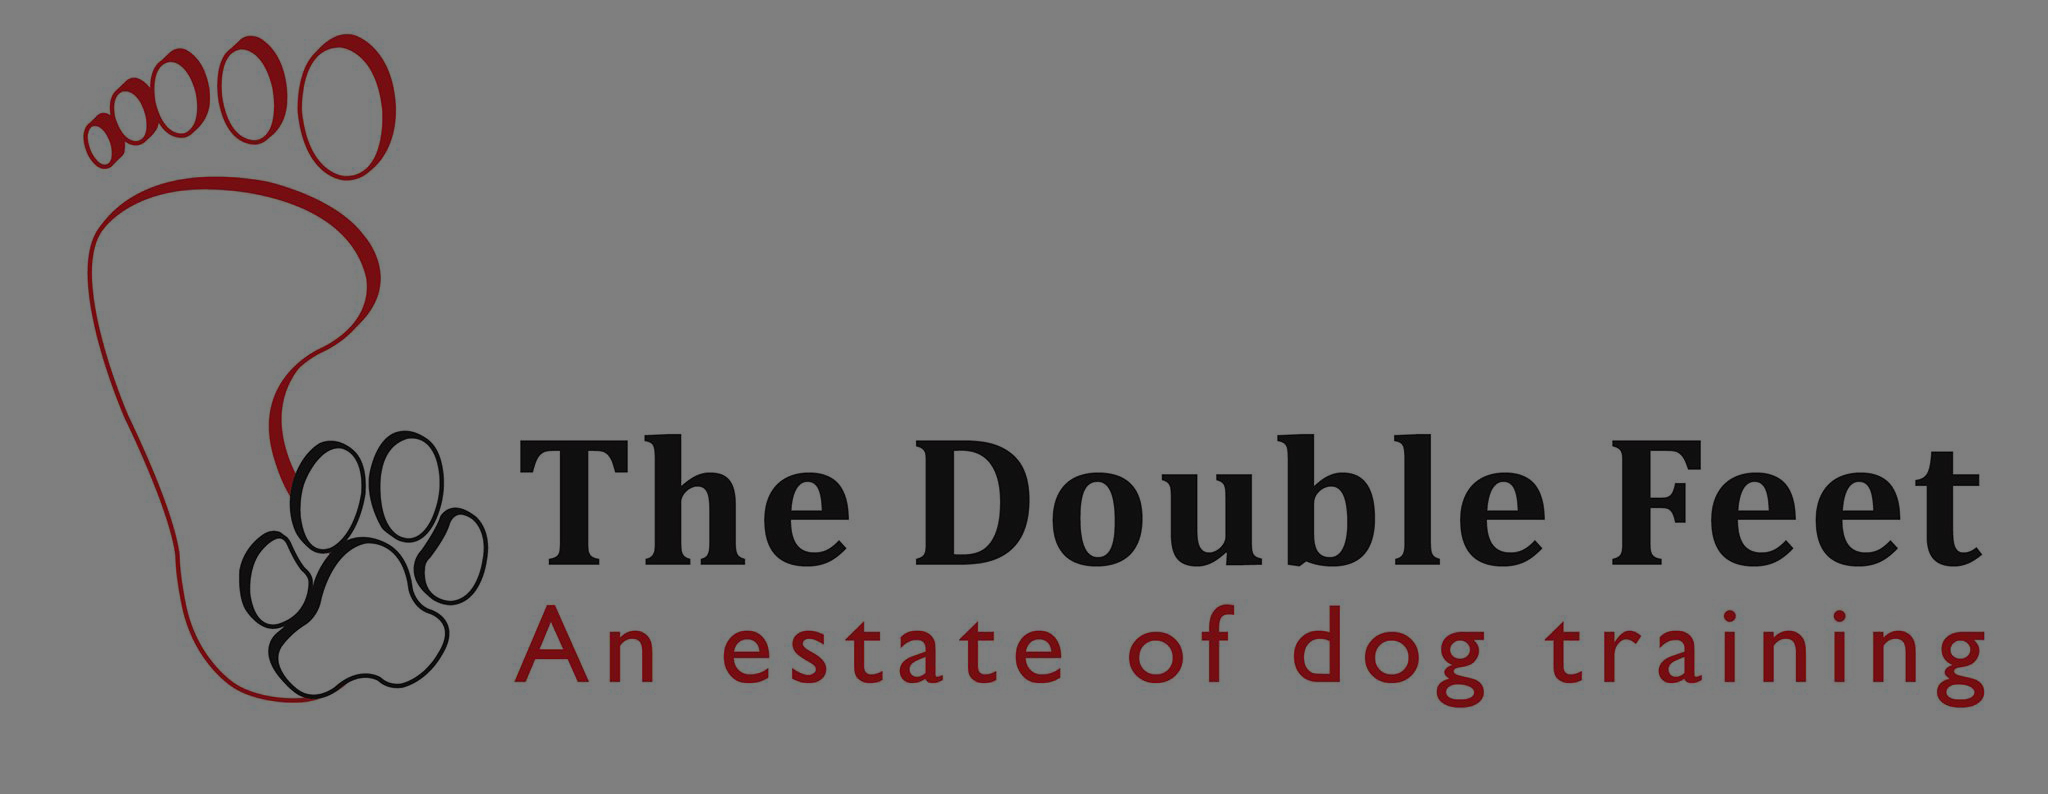 cropped-the_double_feet_logo_recht-e1505385384370